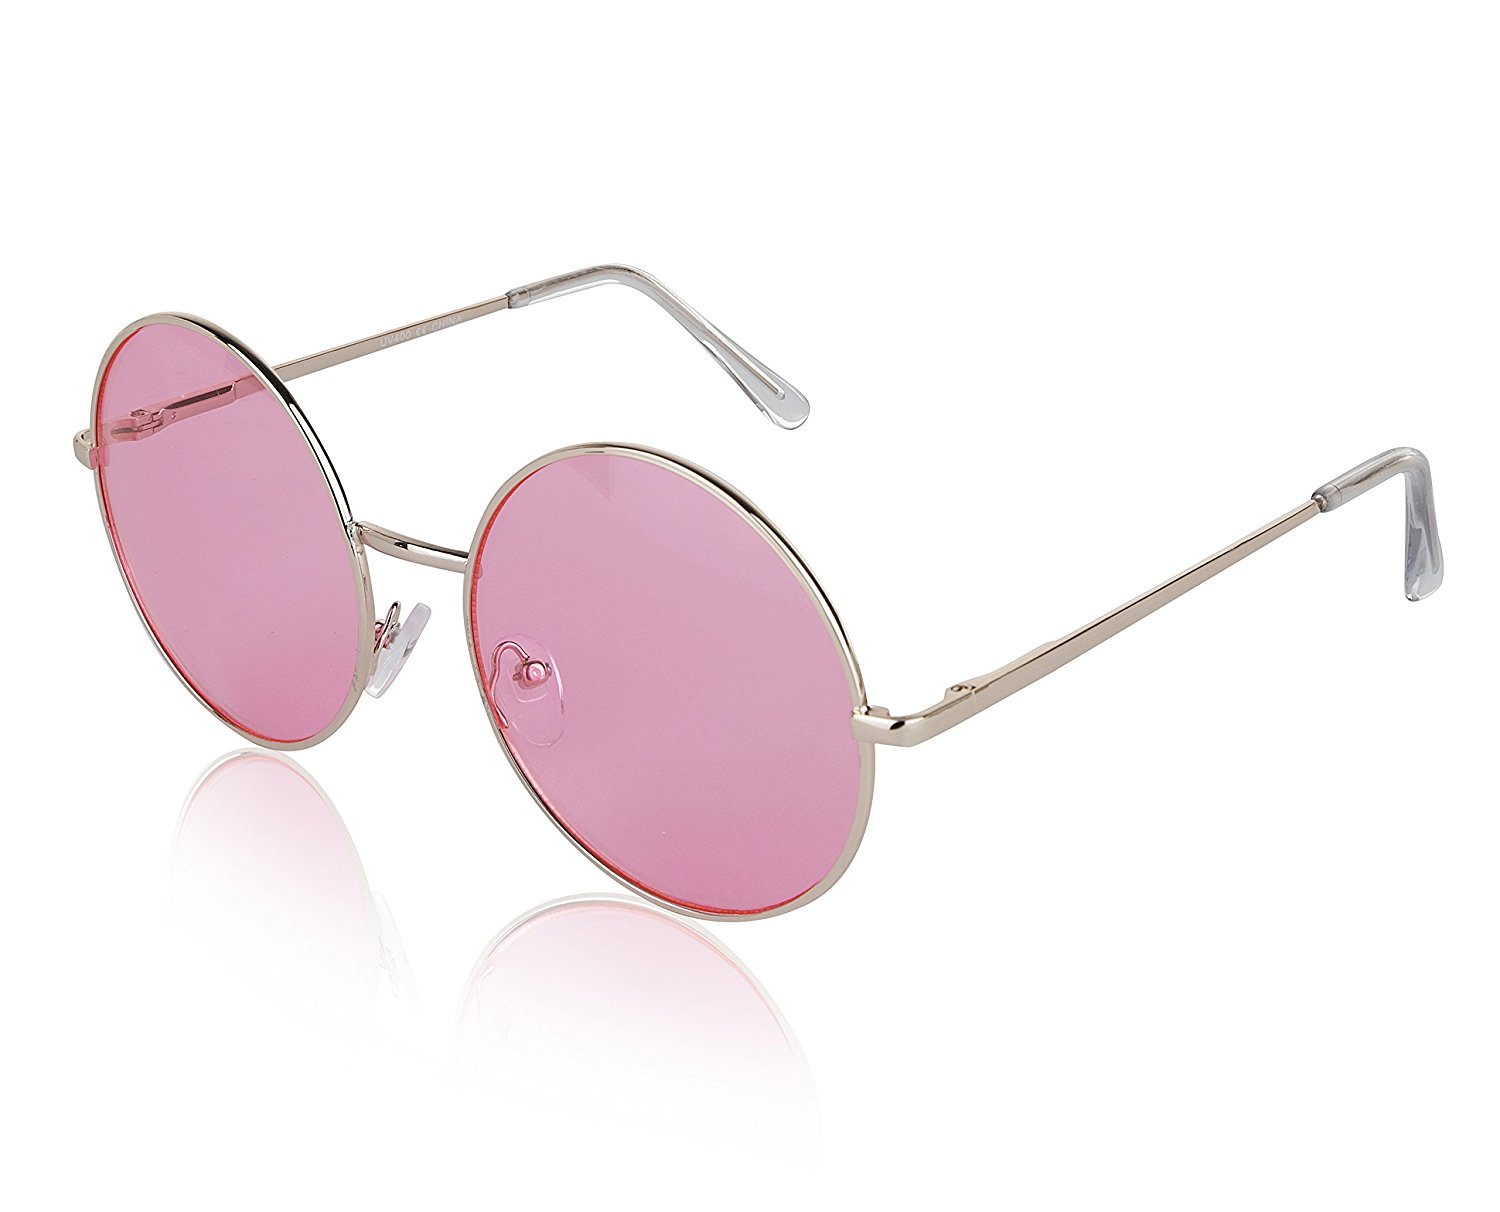 520a99c6b99 Get Quotations · Sunny Pro Round Sunglasses Retro Circle Tinted Lens Glasses  UV400 Protection